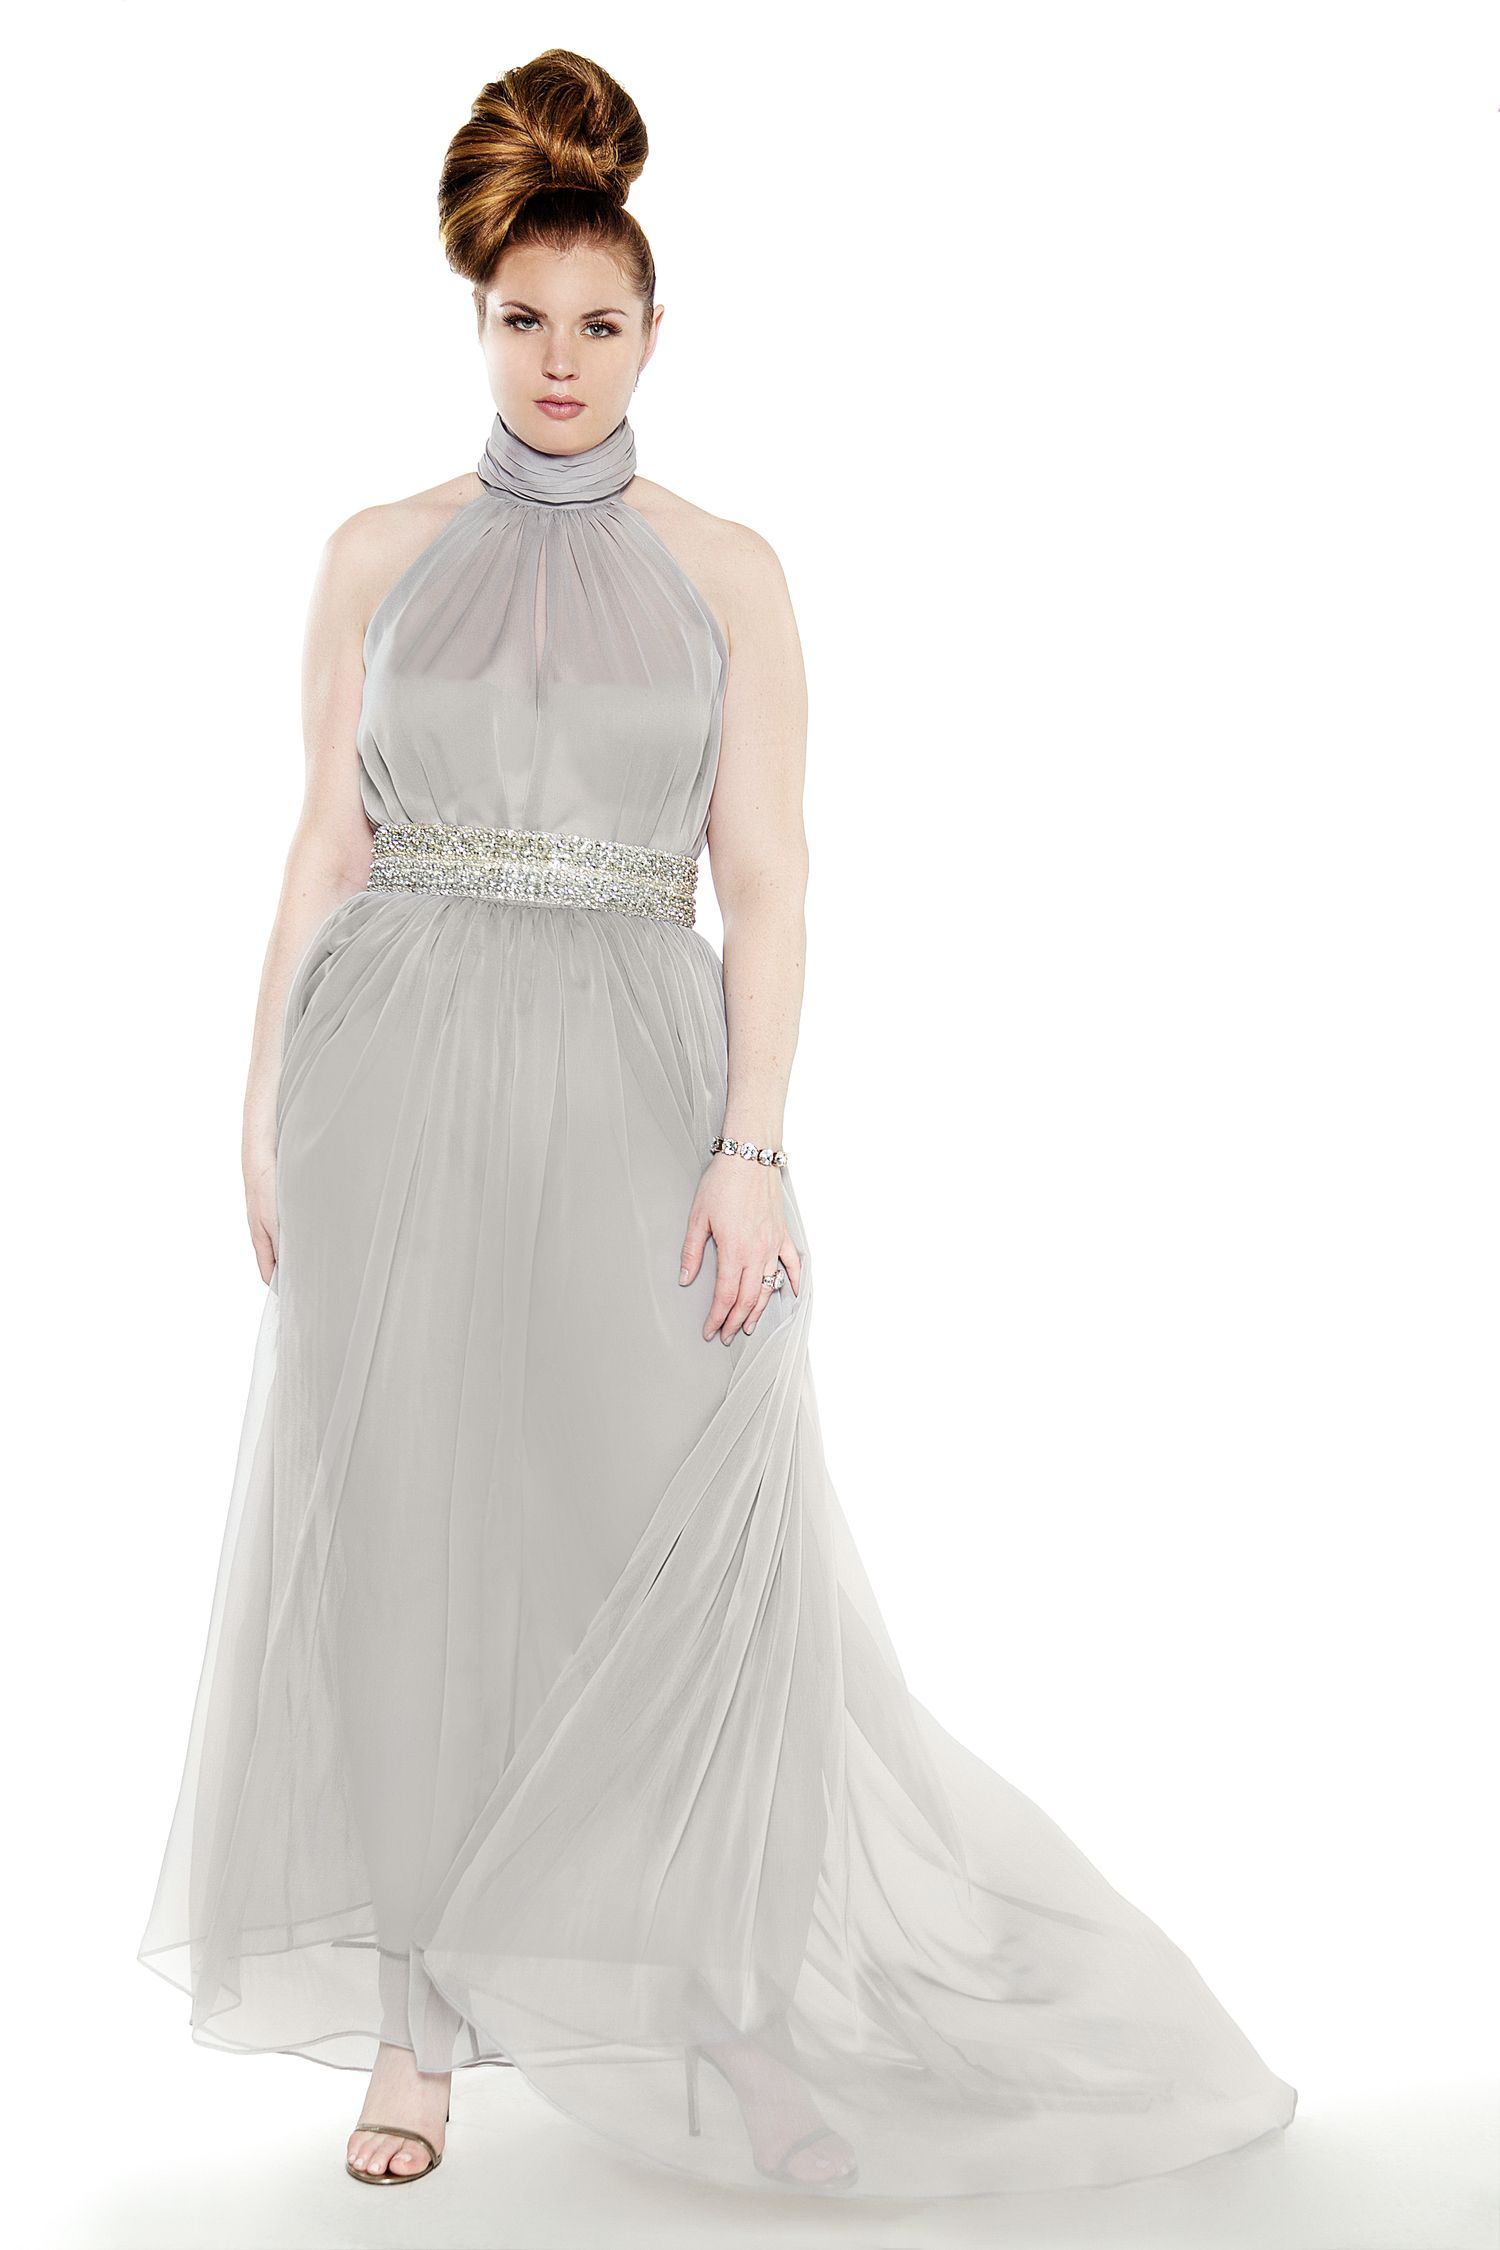 This is such a beautiful wedding dress. This is for the girl whose been around the block.....lol